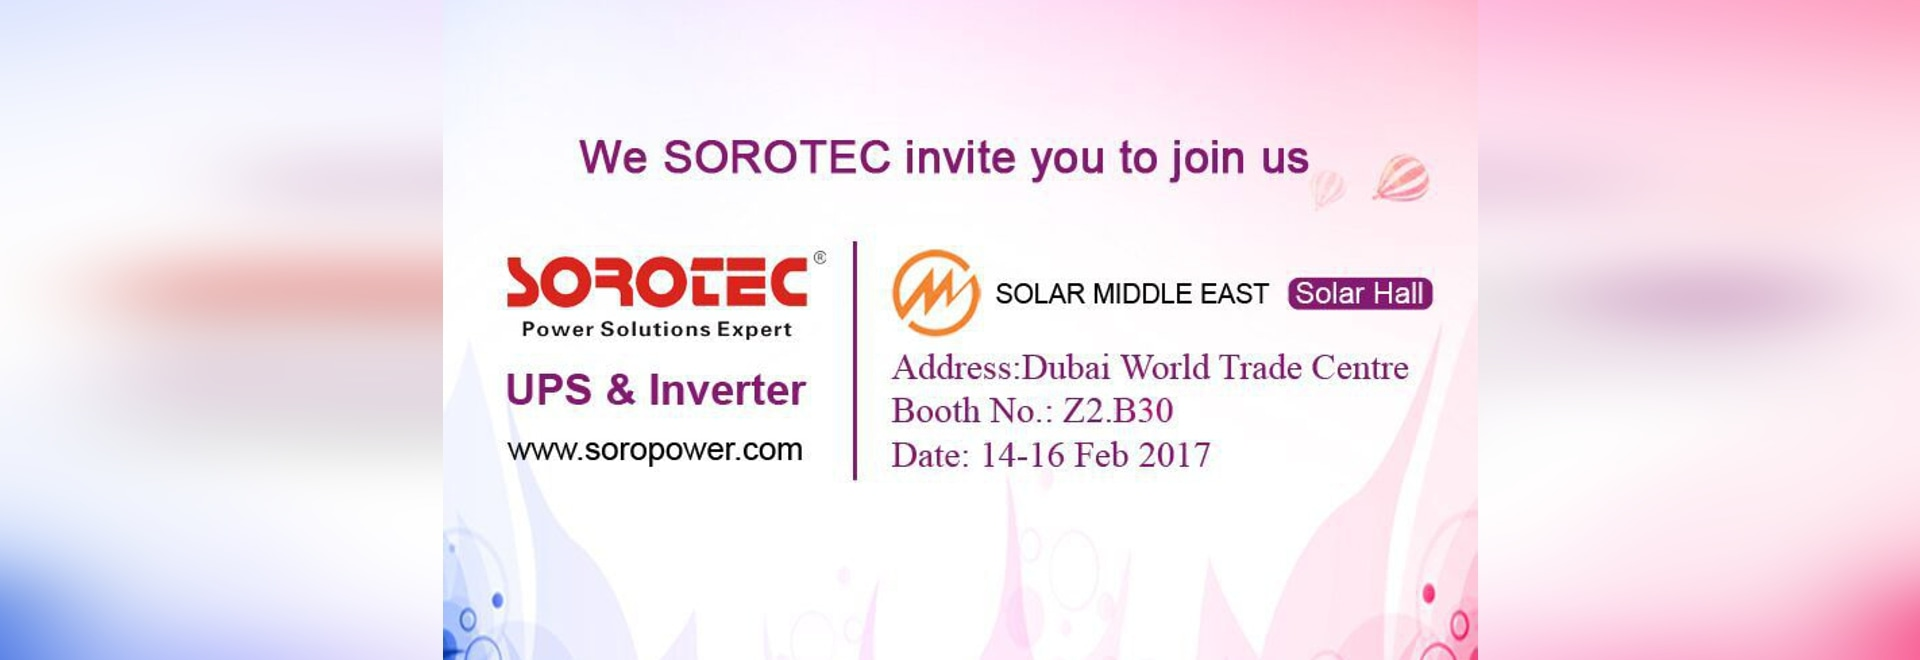 SORO will attend the 2017 Solar Middle East Exhibition in Dubai